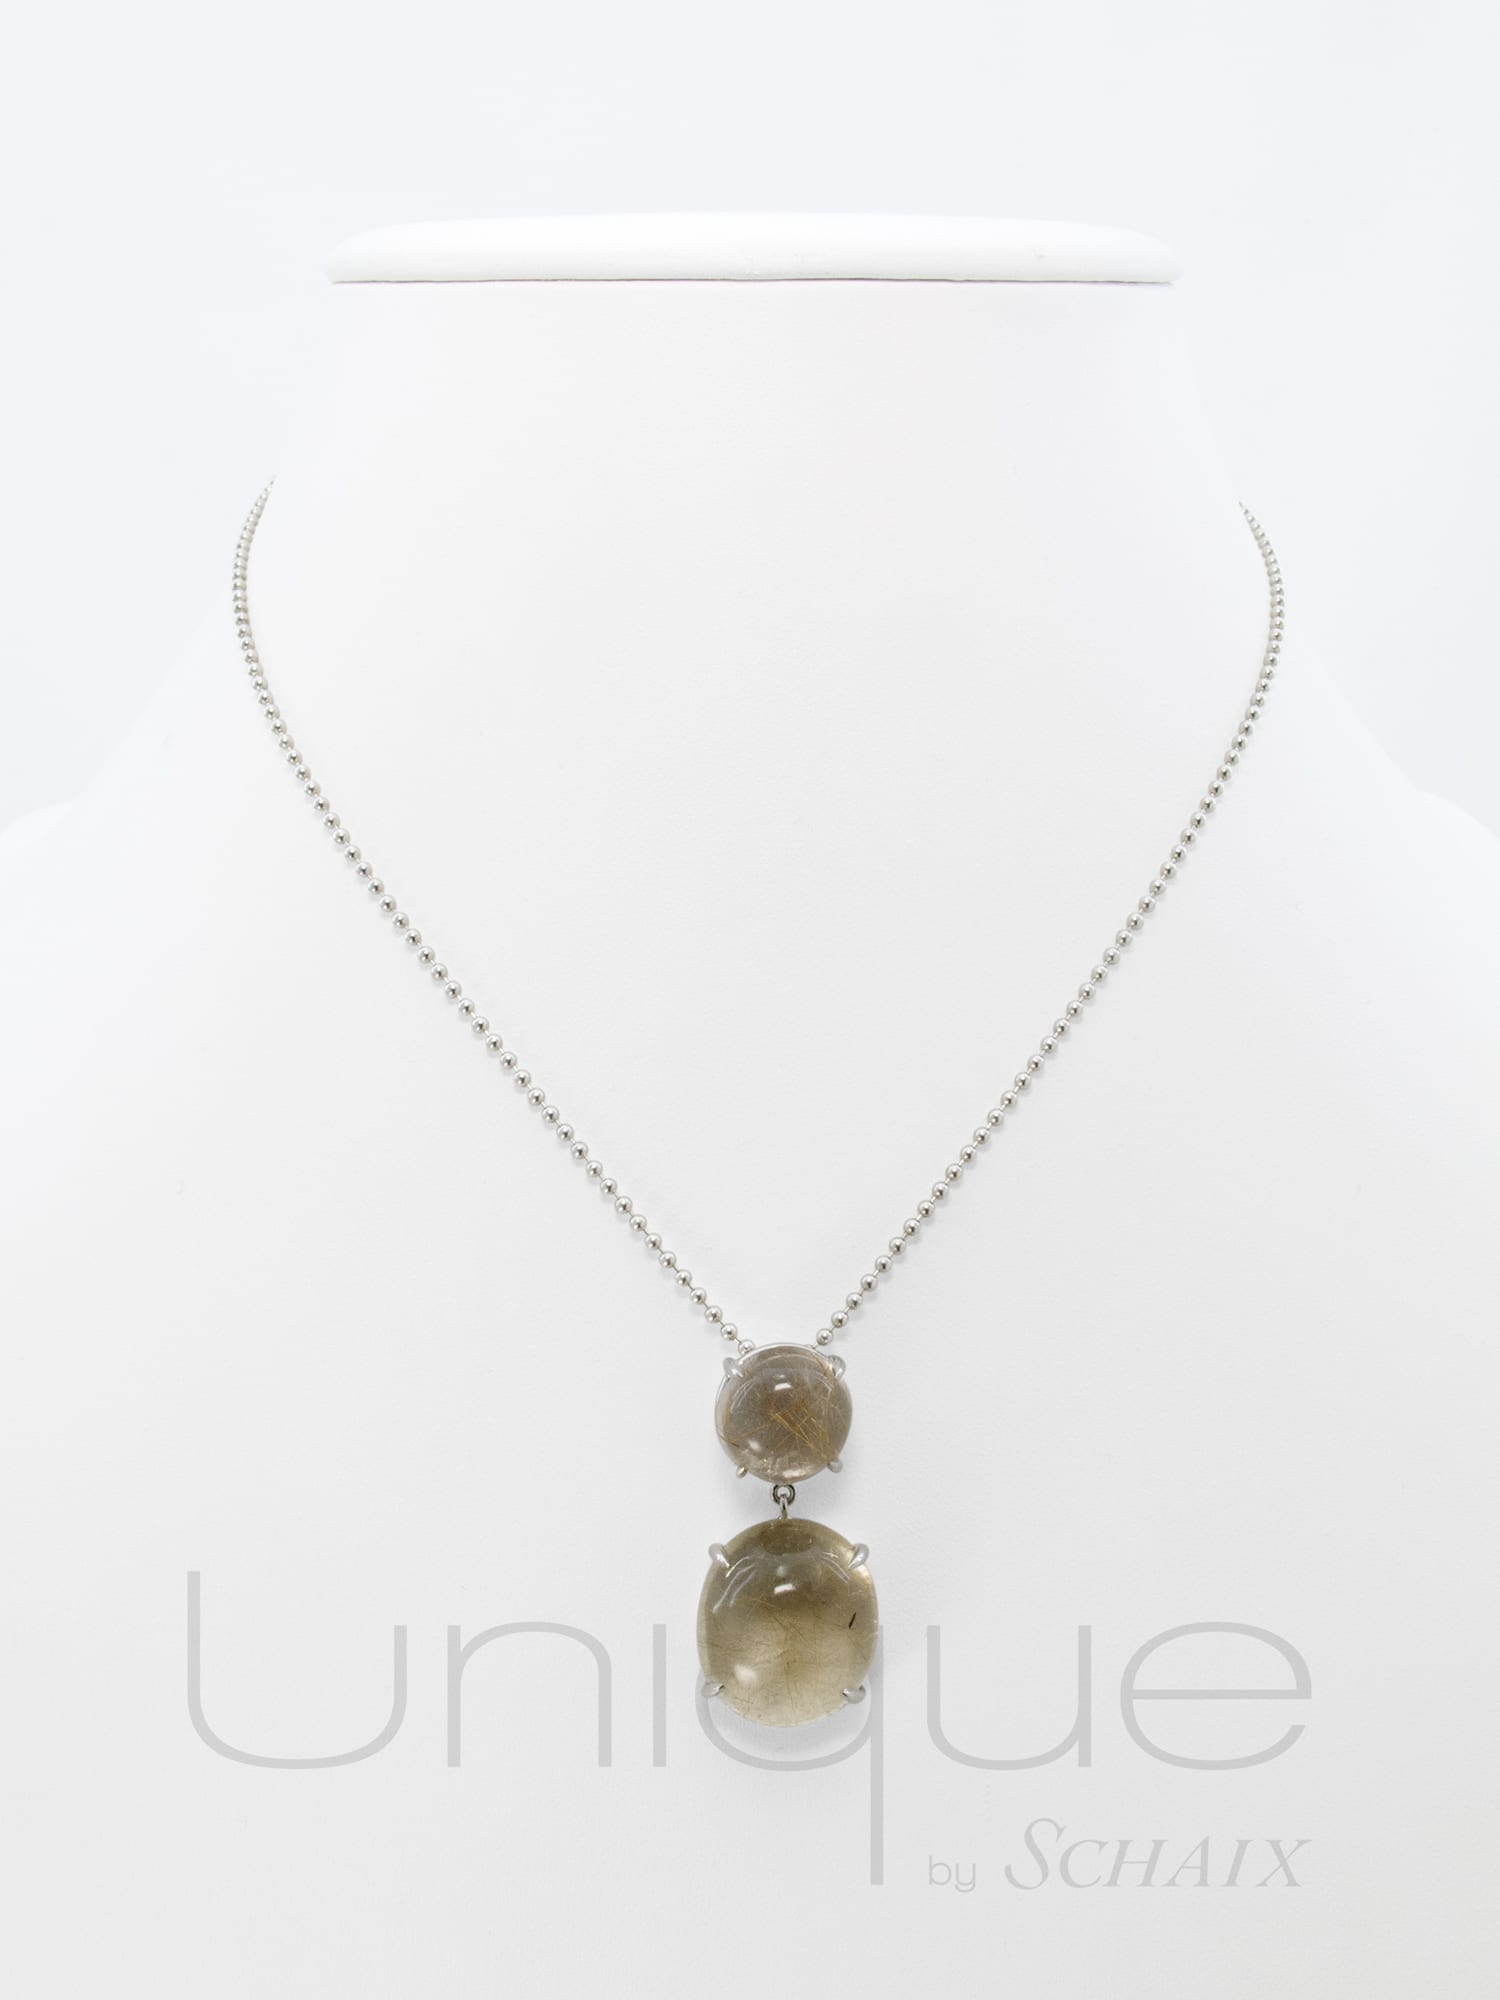 Pendant with a round rutilated quartz cabochon topped with a coordinated cabochon in a silver beads chain.